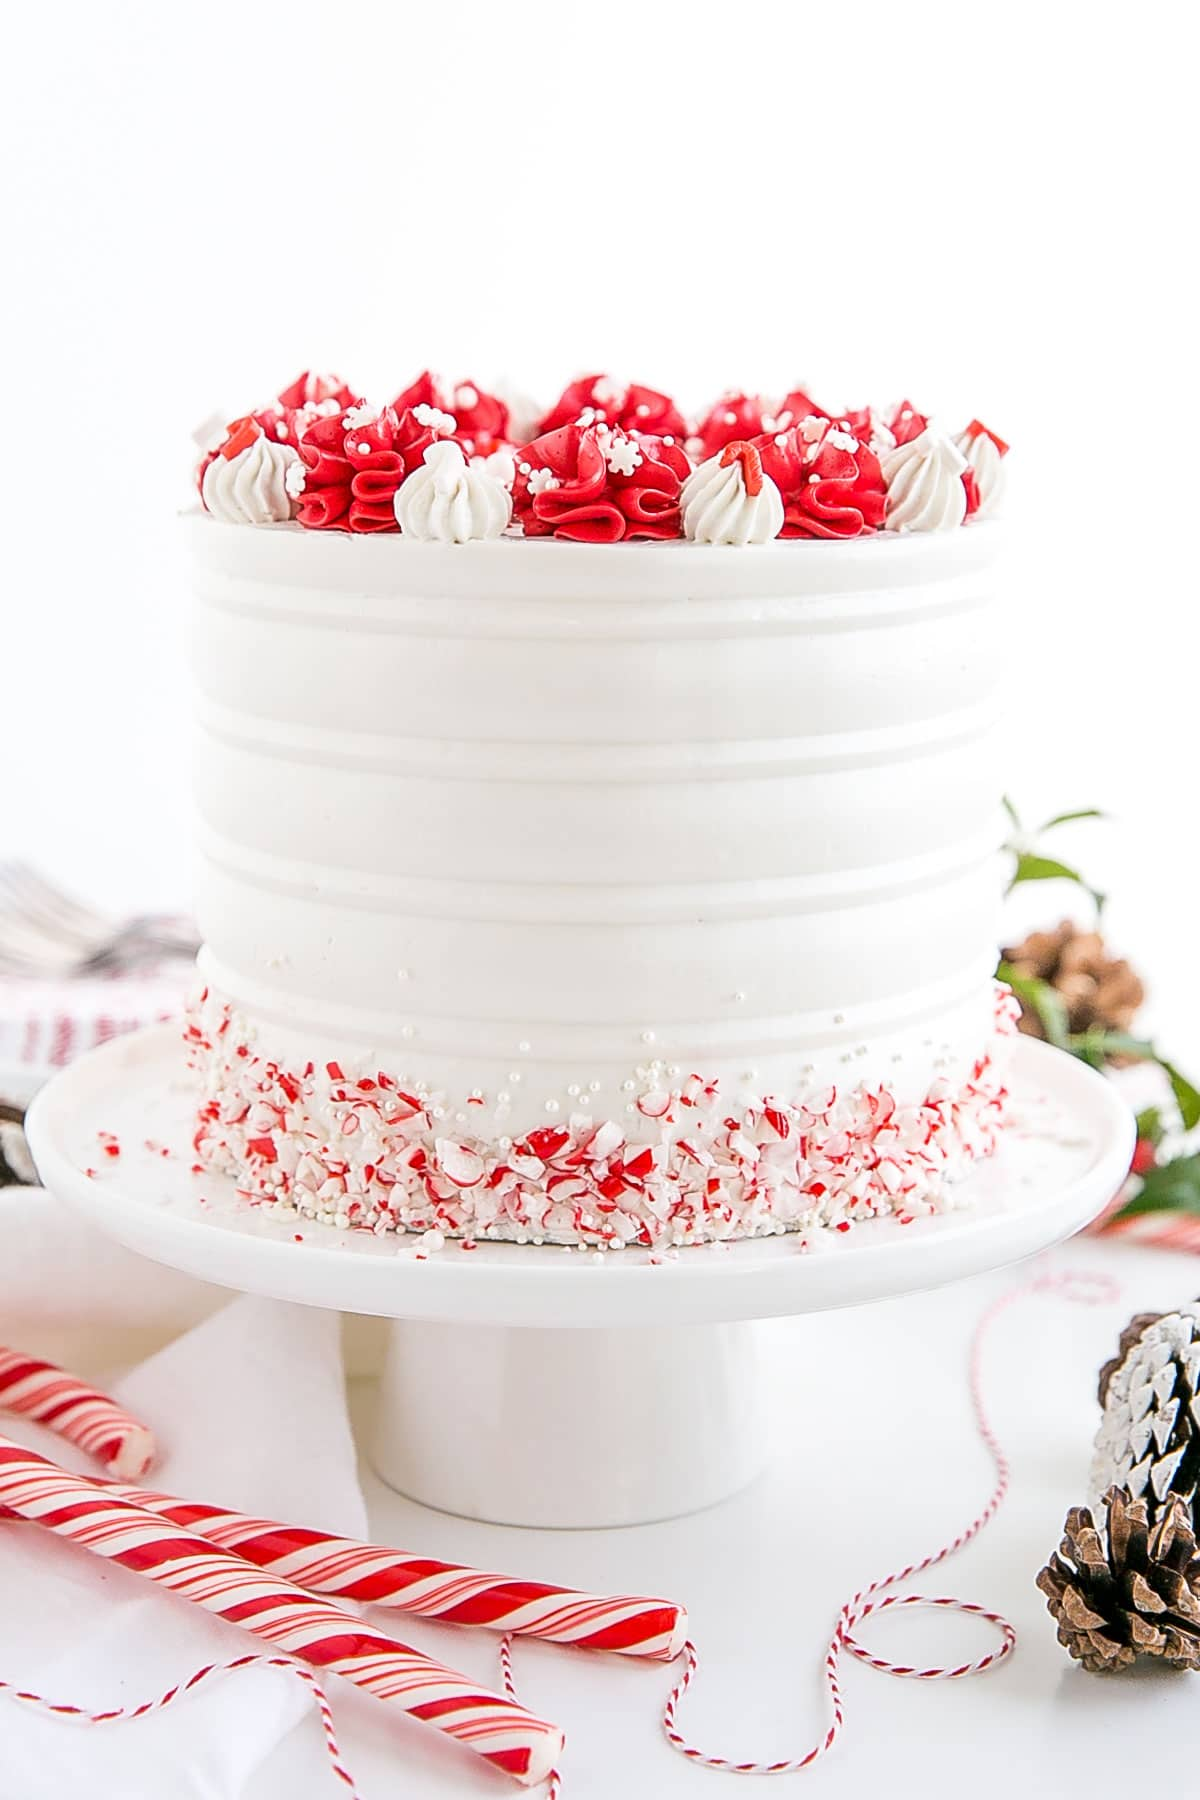 Red and white cake on a white cake stand.